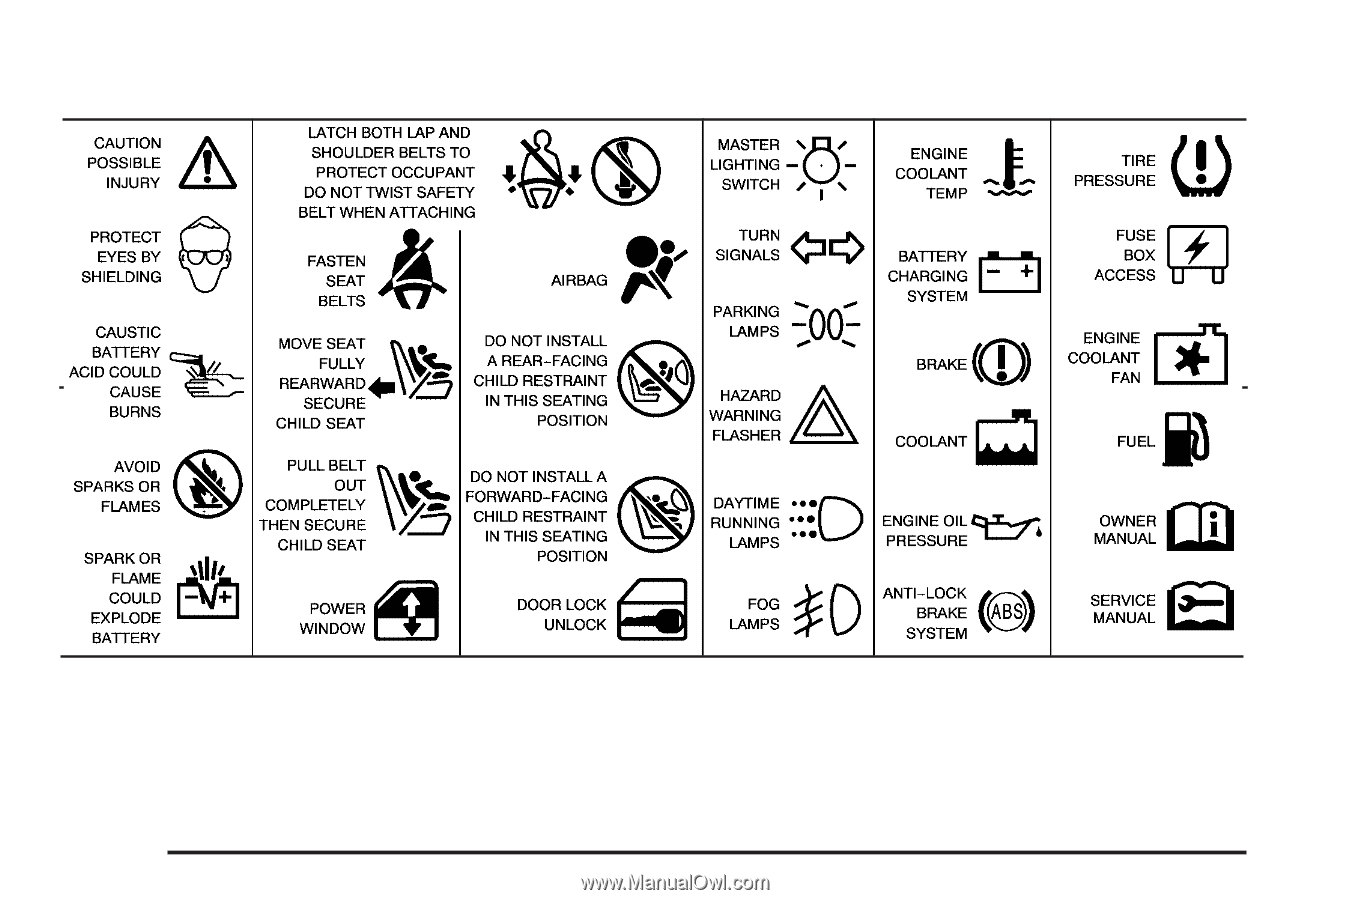 hight resolution of these are some examples of symbols that may be found on the vehicle